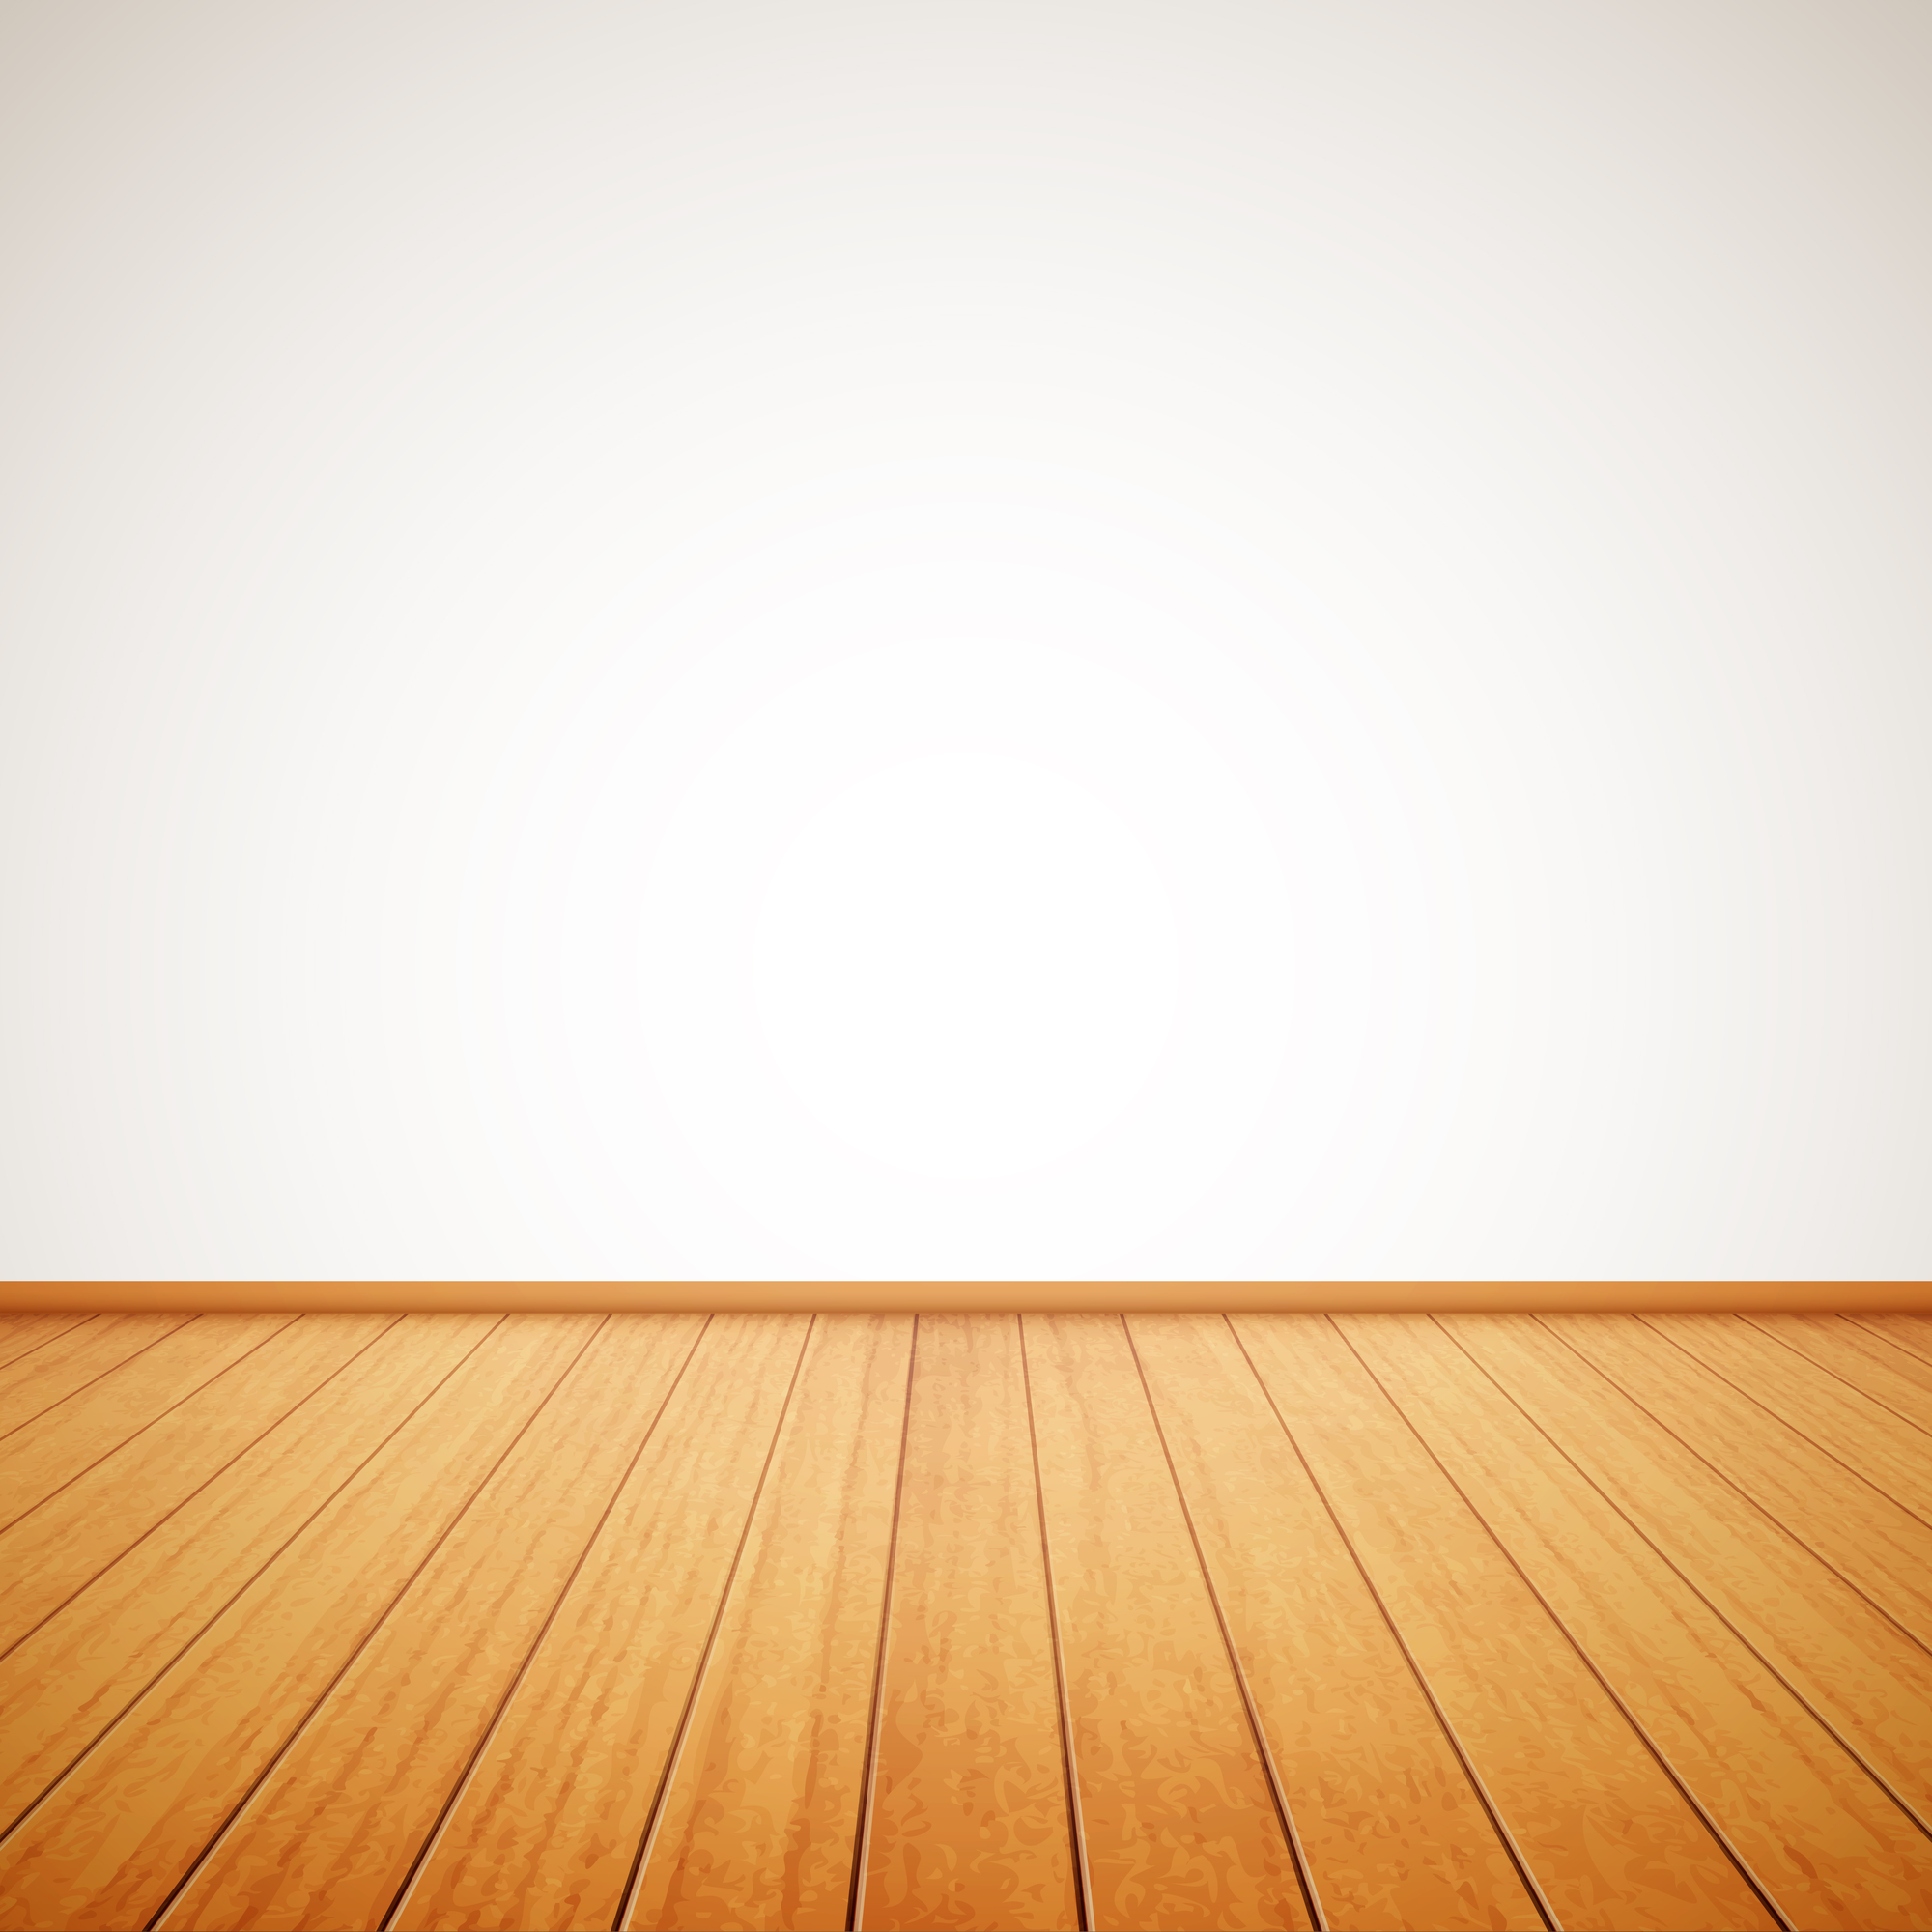 Ace Your Next Home Improvement With These Wood Flooring Trends - Affordable Remodeling ...